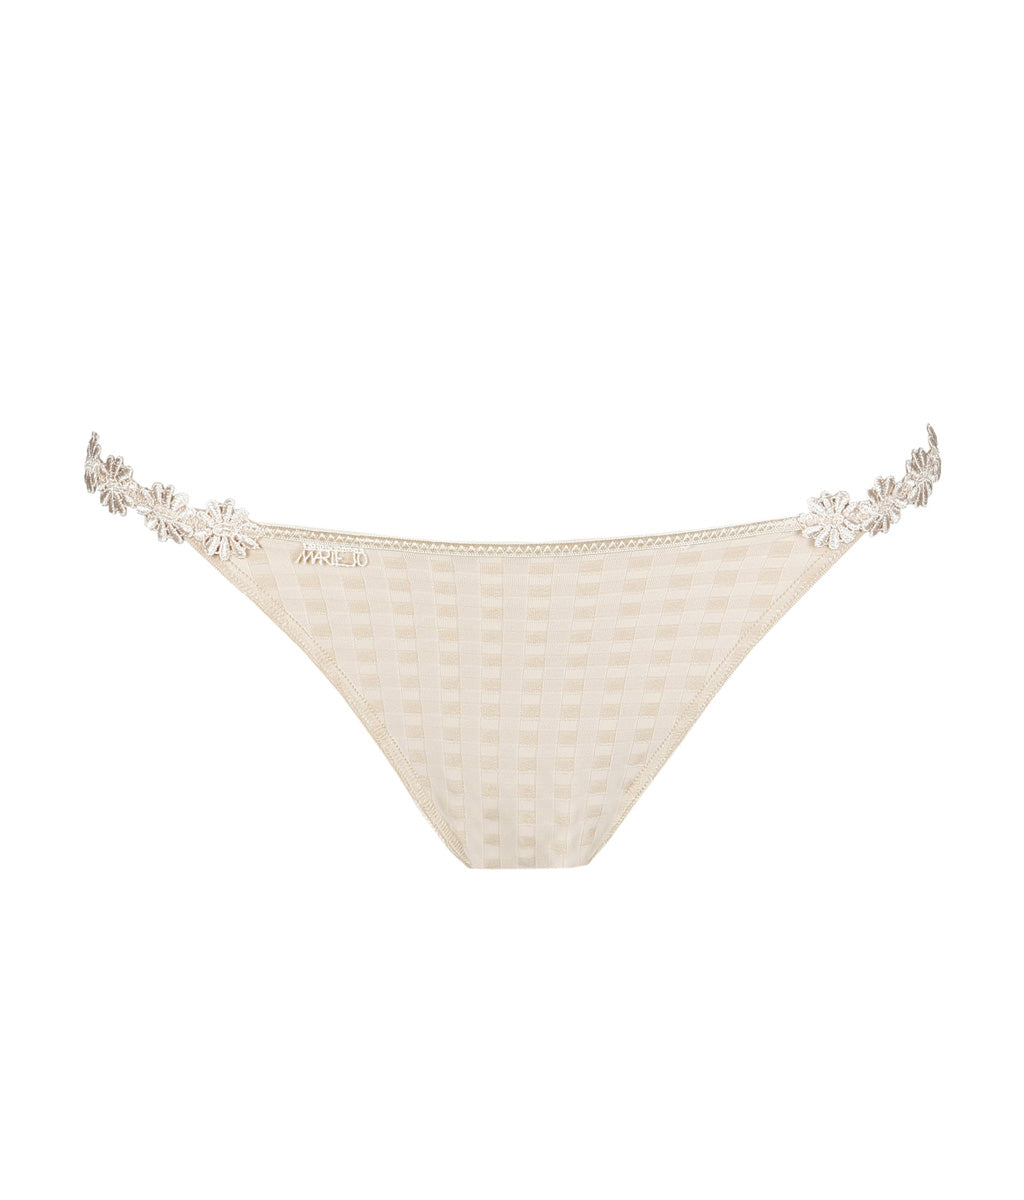 Marie Jo 'Avero' (Caffé Latte) Low Waist Brief - Sandra Dee - Product Shot - Front